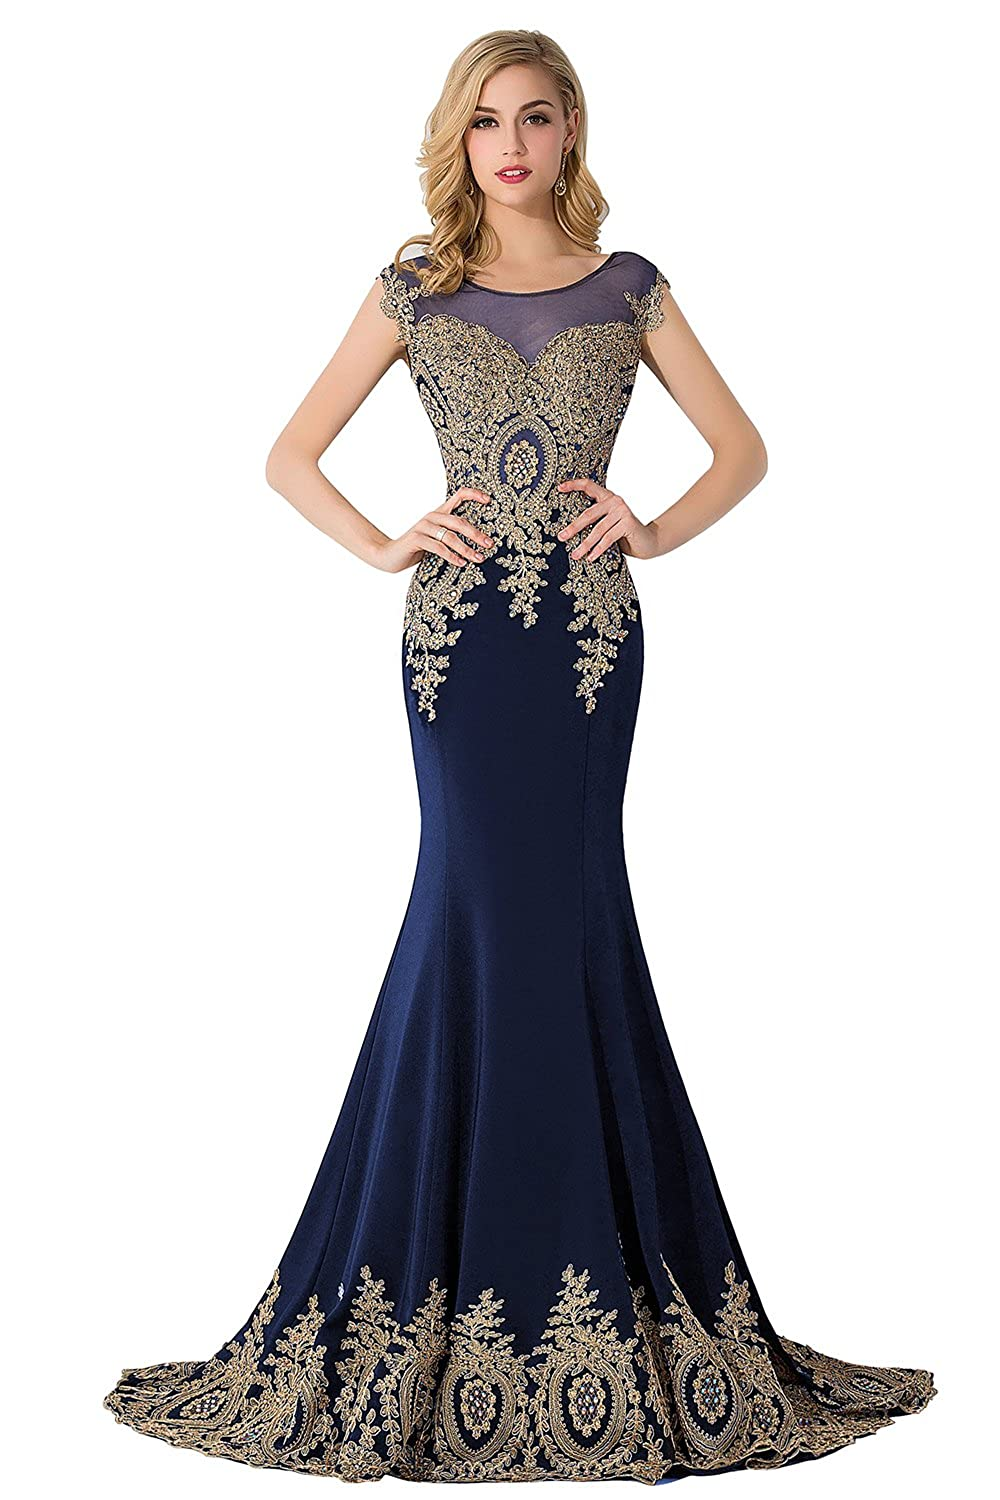 4109817e145 Amazon.com  MisShow Women s Rhinestone Long Applique Trumpet Mermaid  Evening Prom Dresses  Clothing